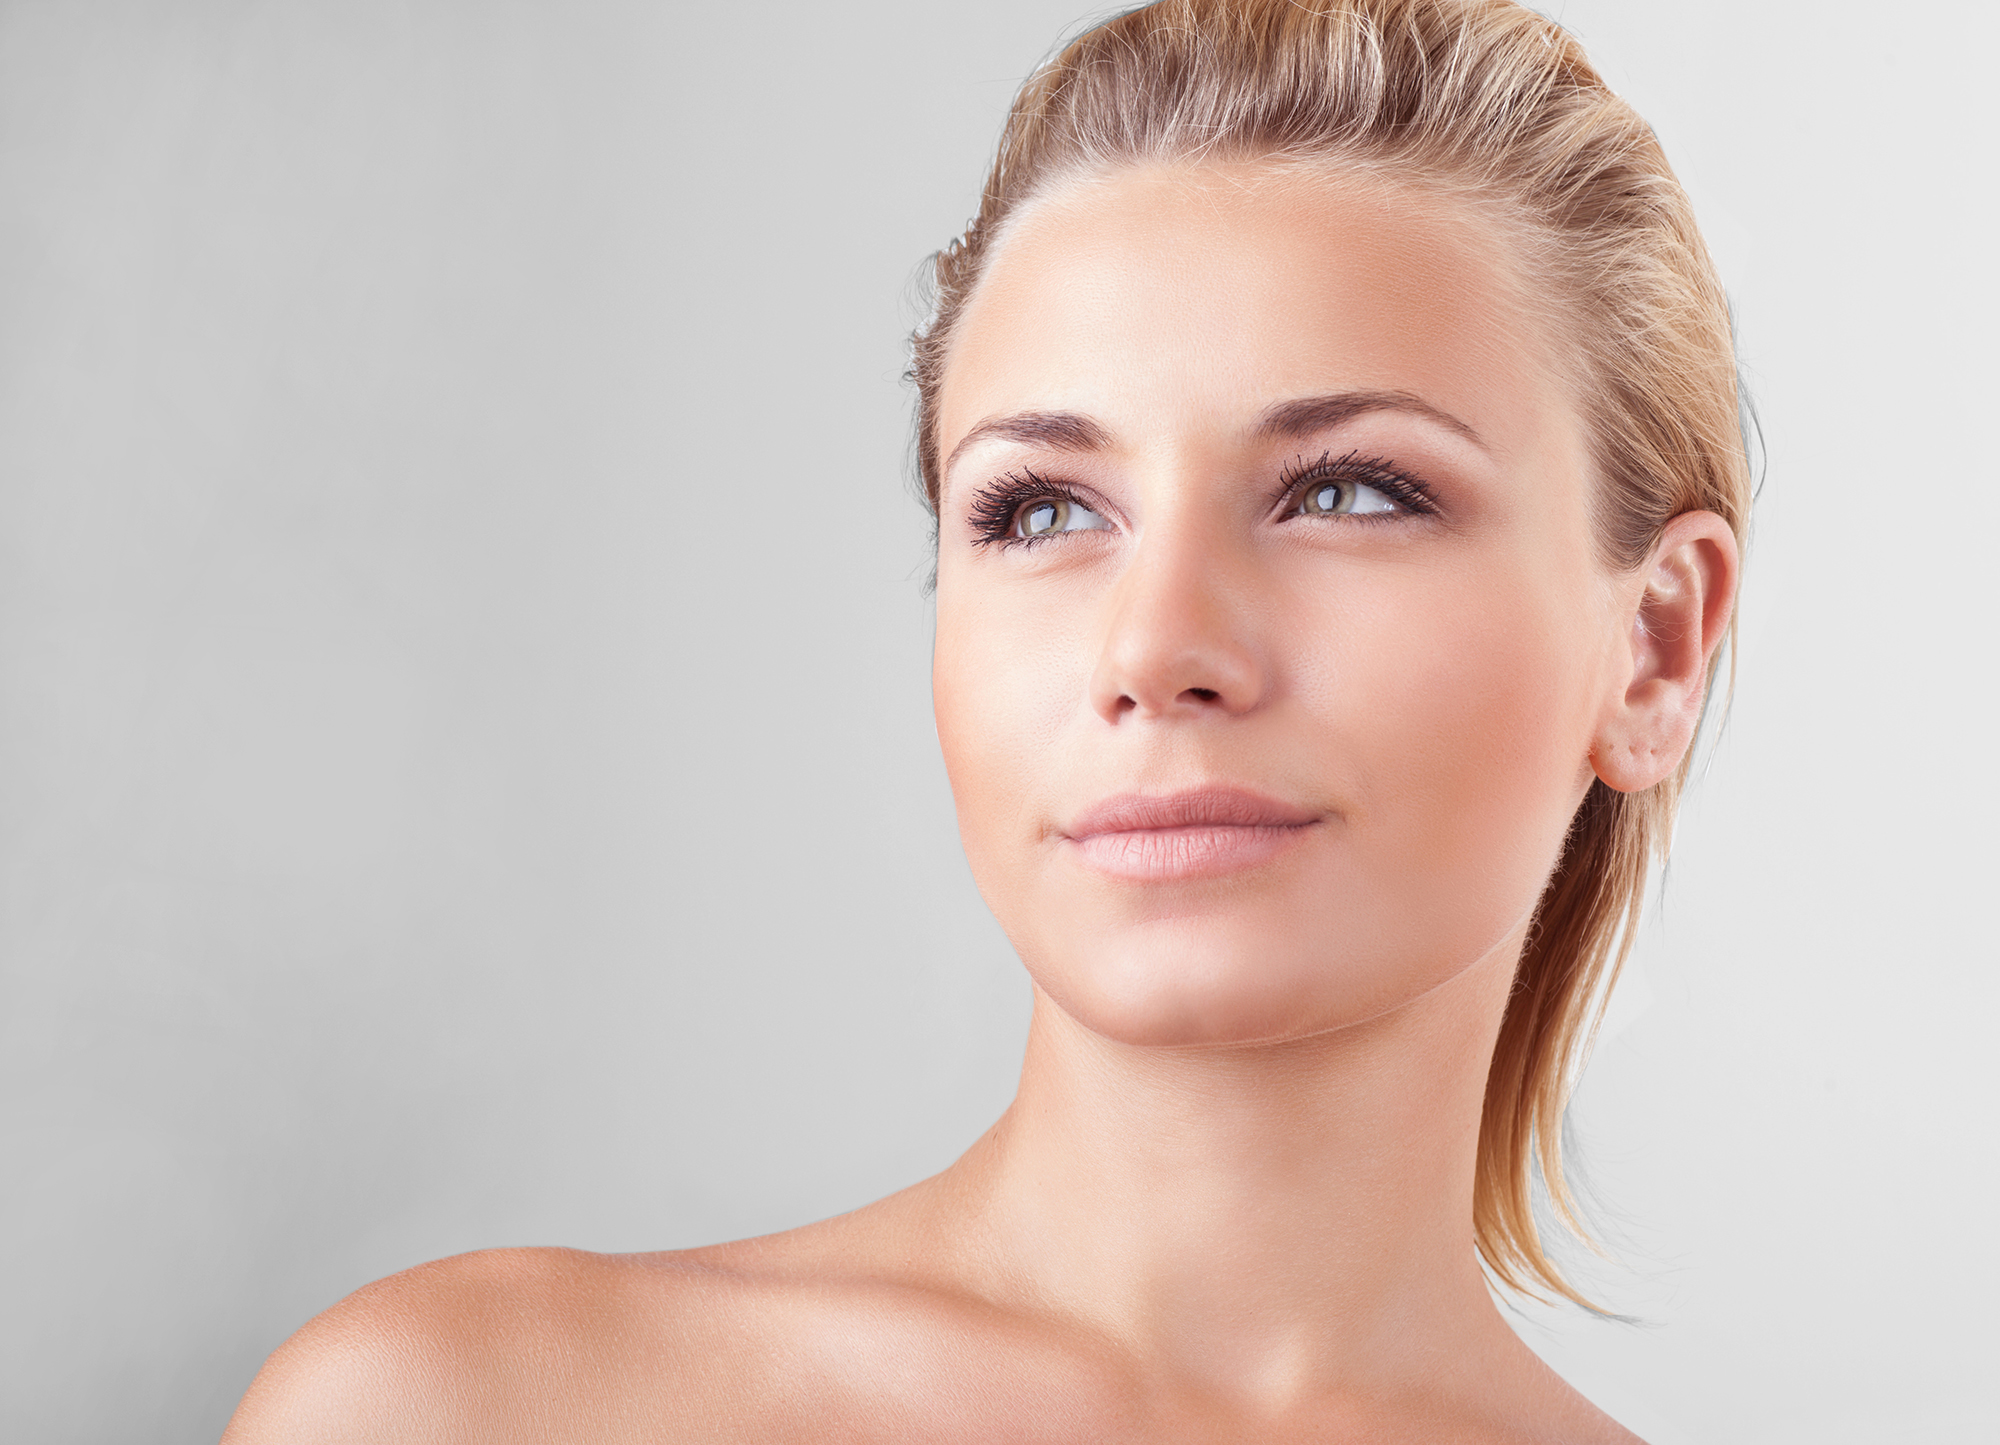 Botox treatment by Aesthetic Physician Dr Decates